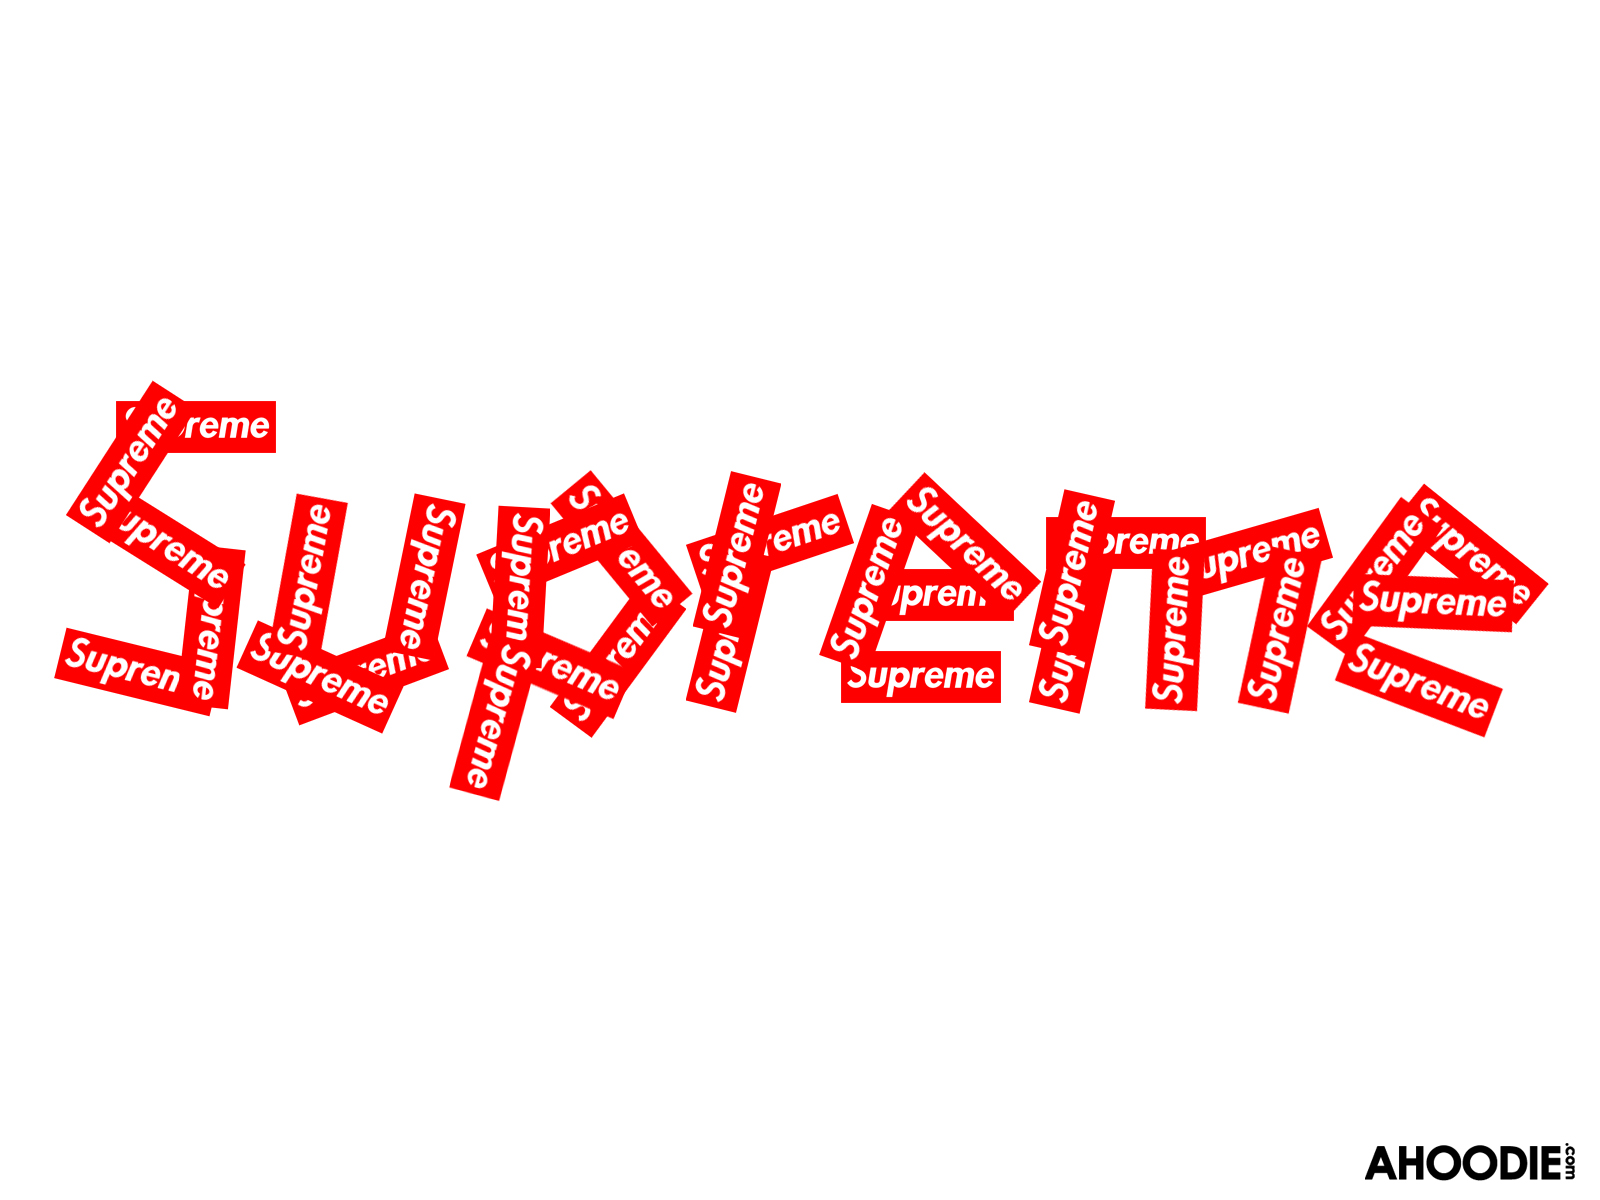 Top Supreme Tumblr Iphone Wallpaper Wallpapers 1600x1200